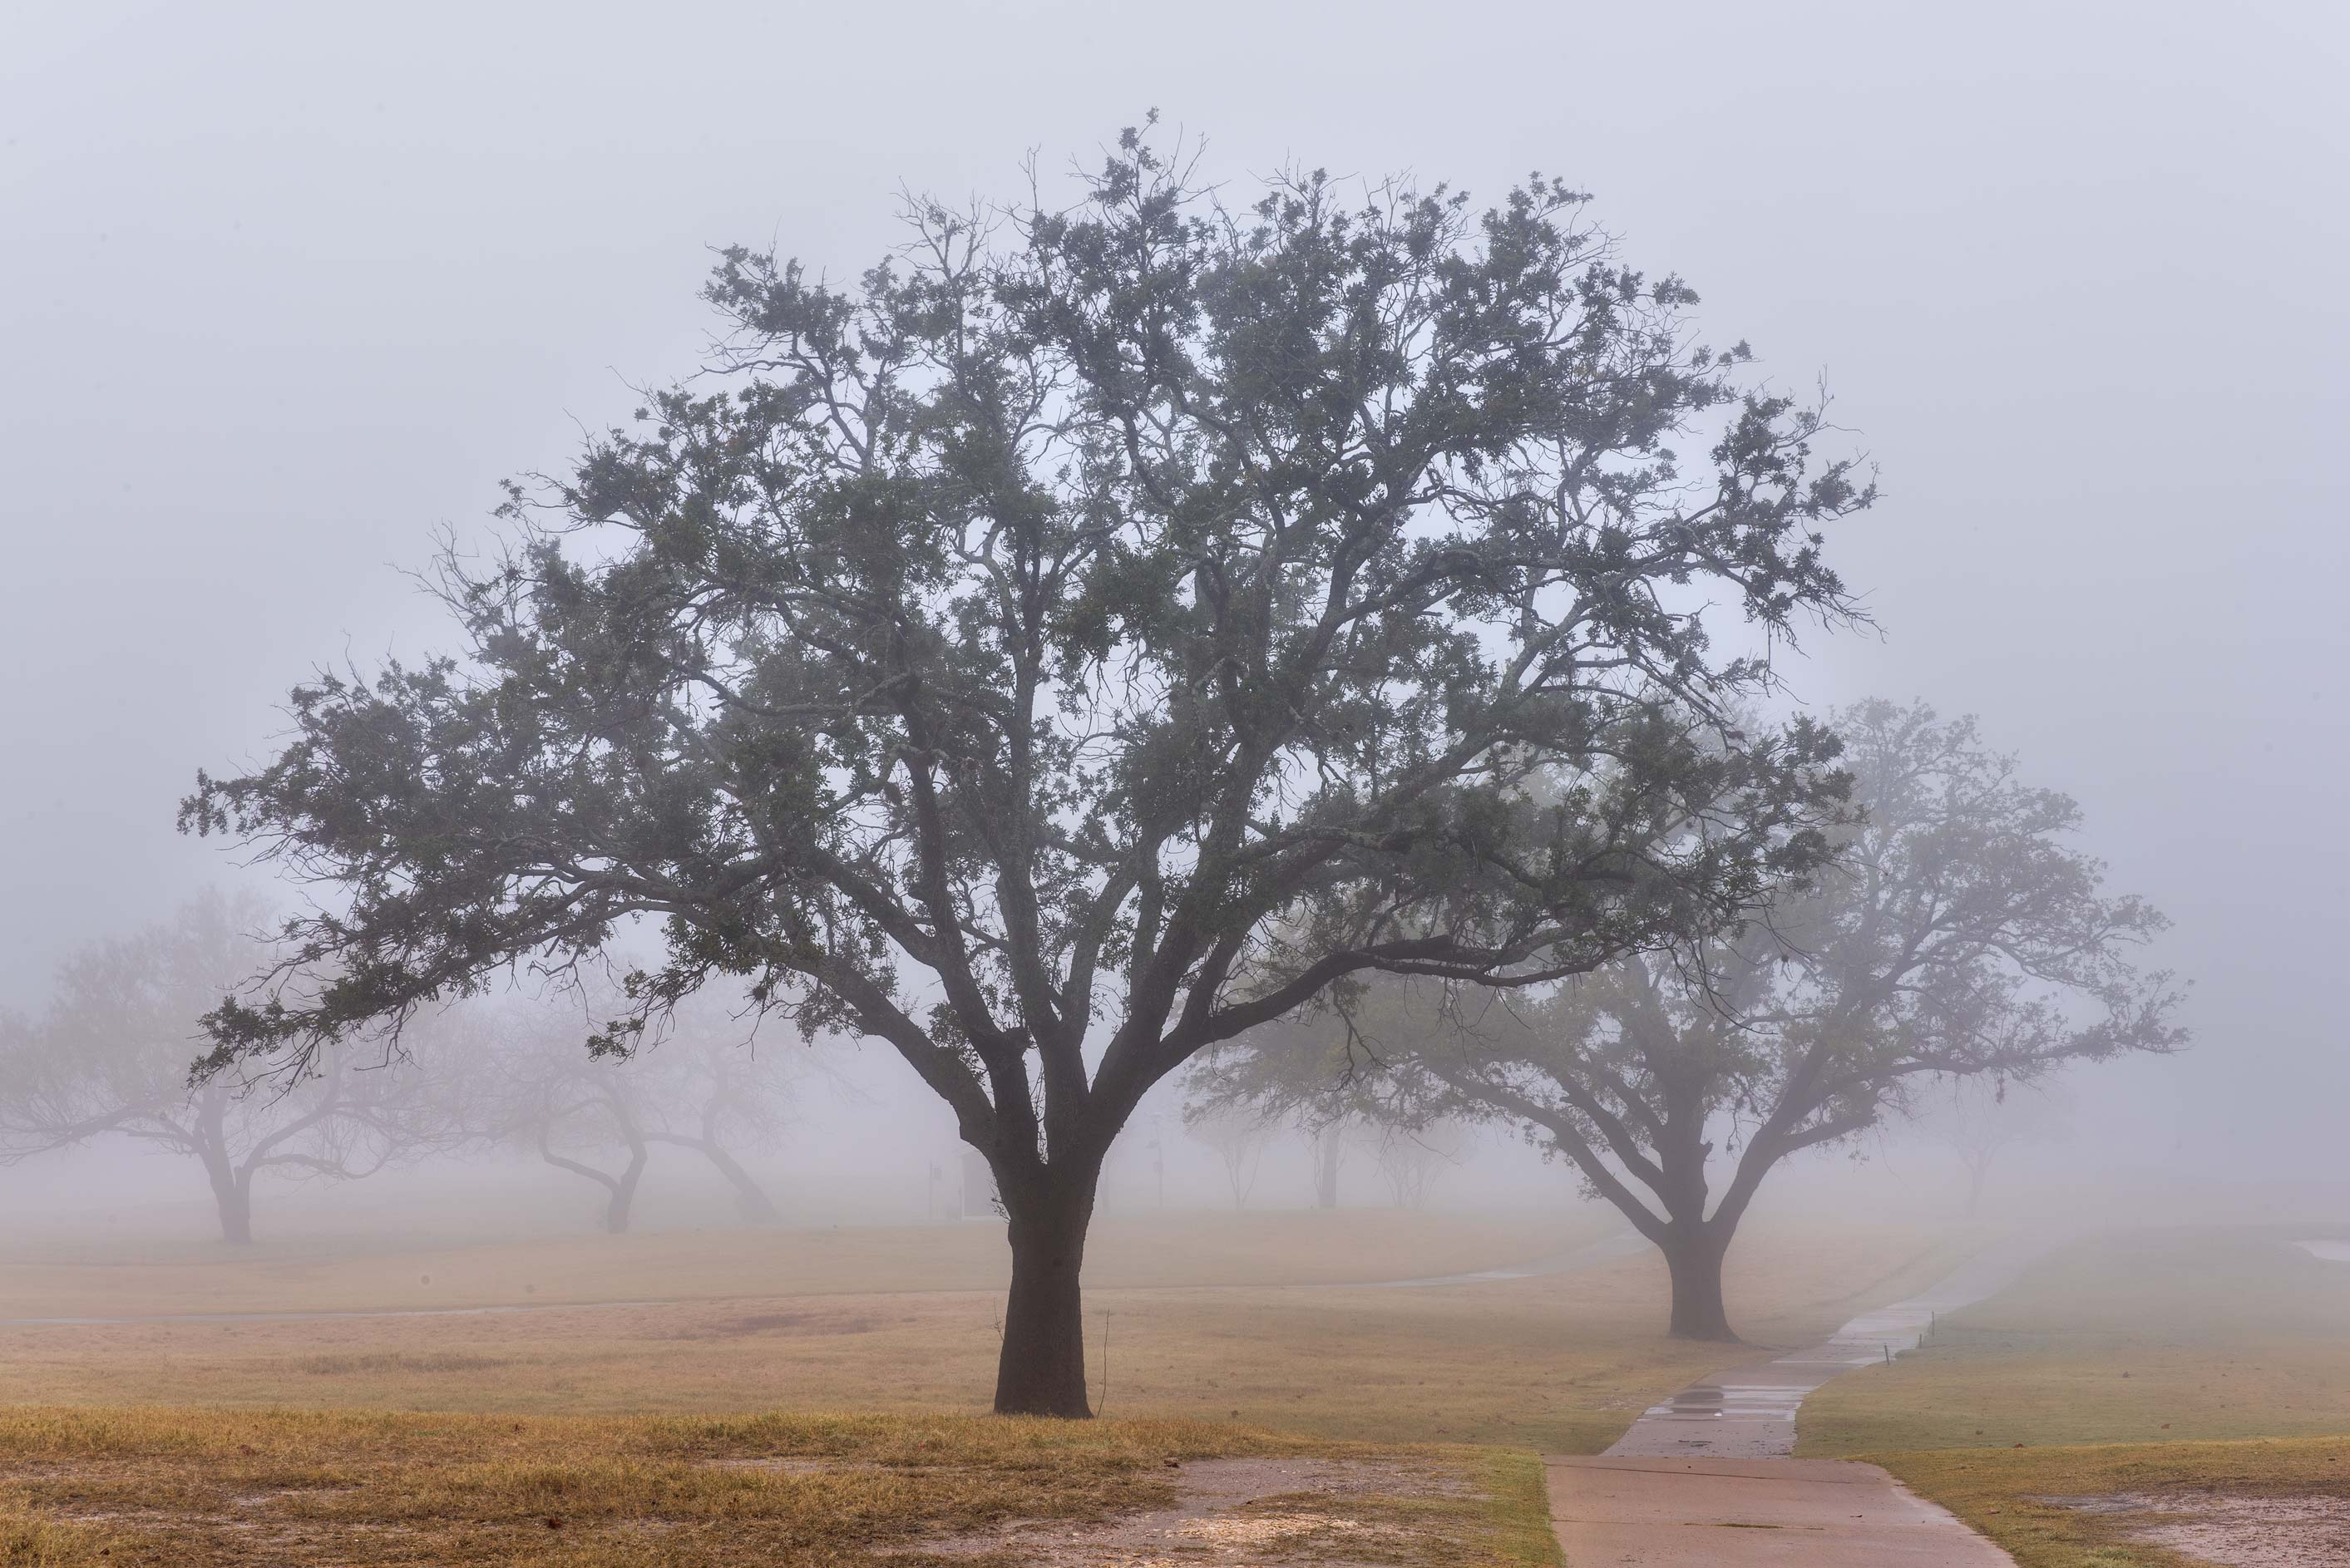 Outlines of live oaks on Texas A&M Campus golf course. College Station, Texas